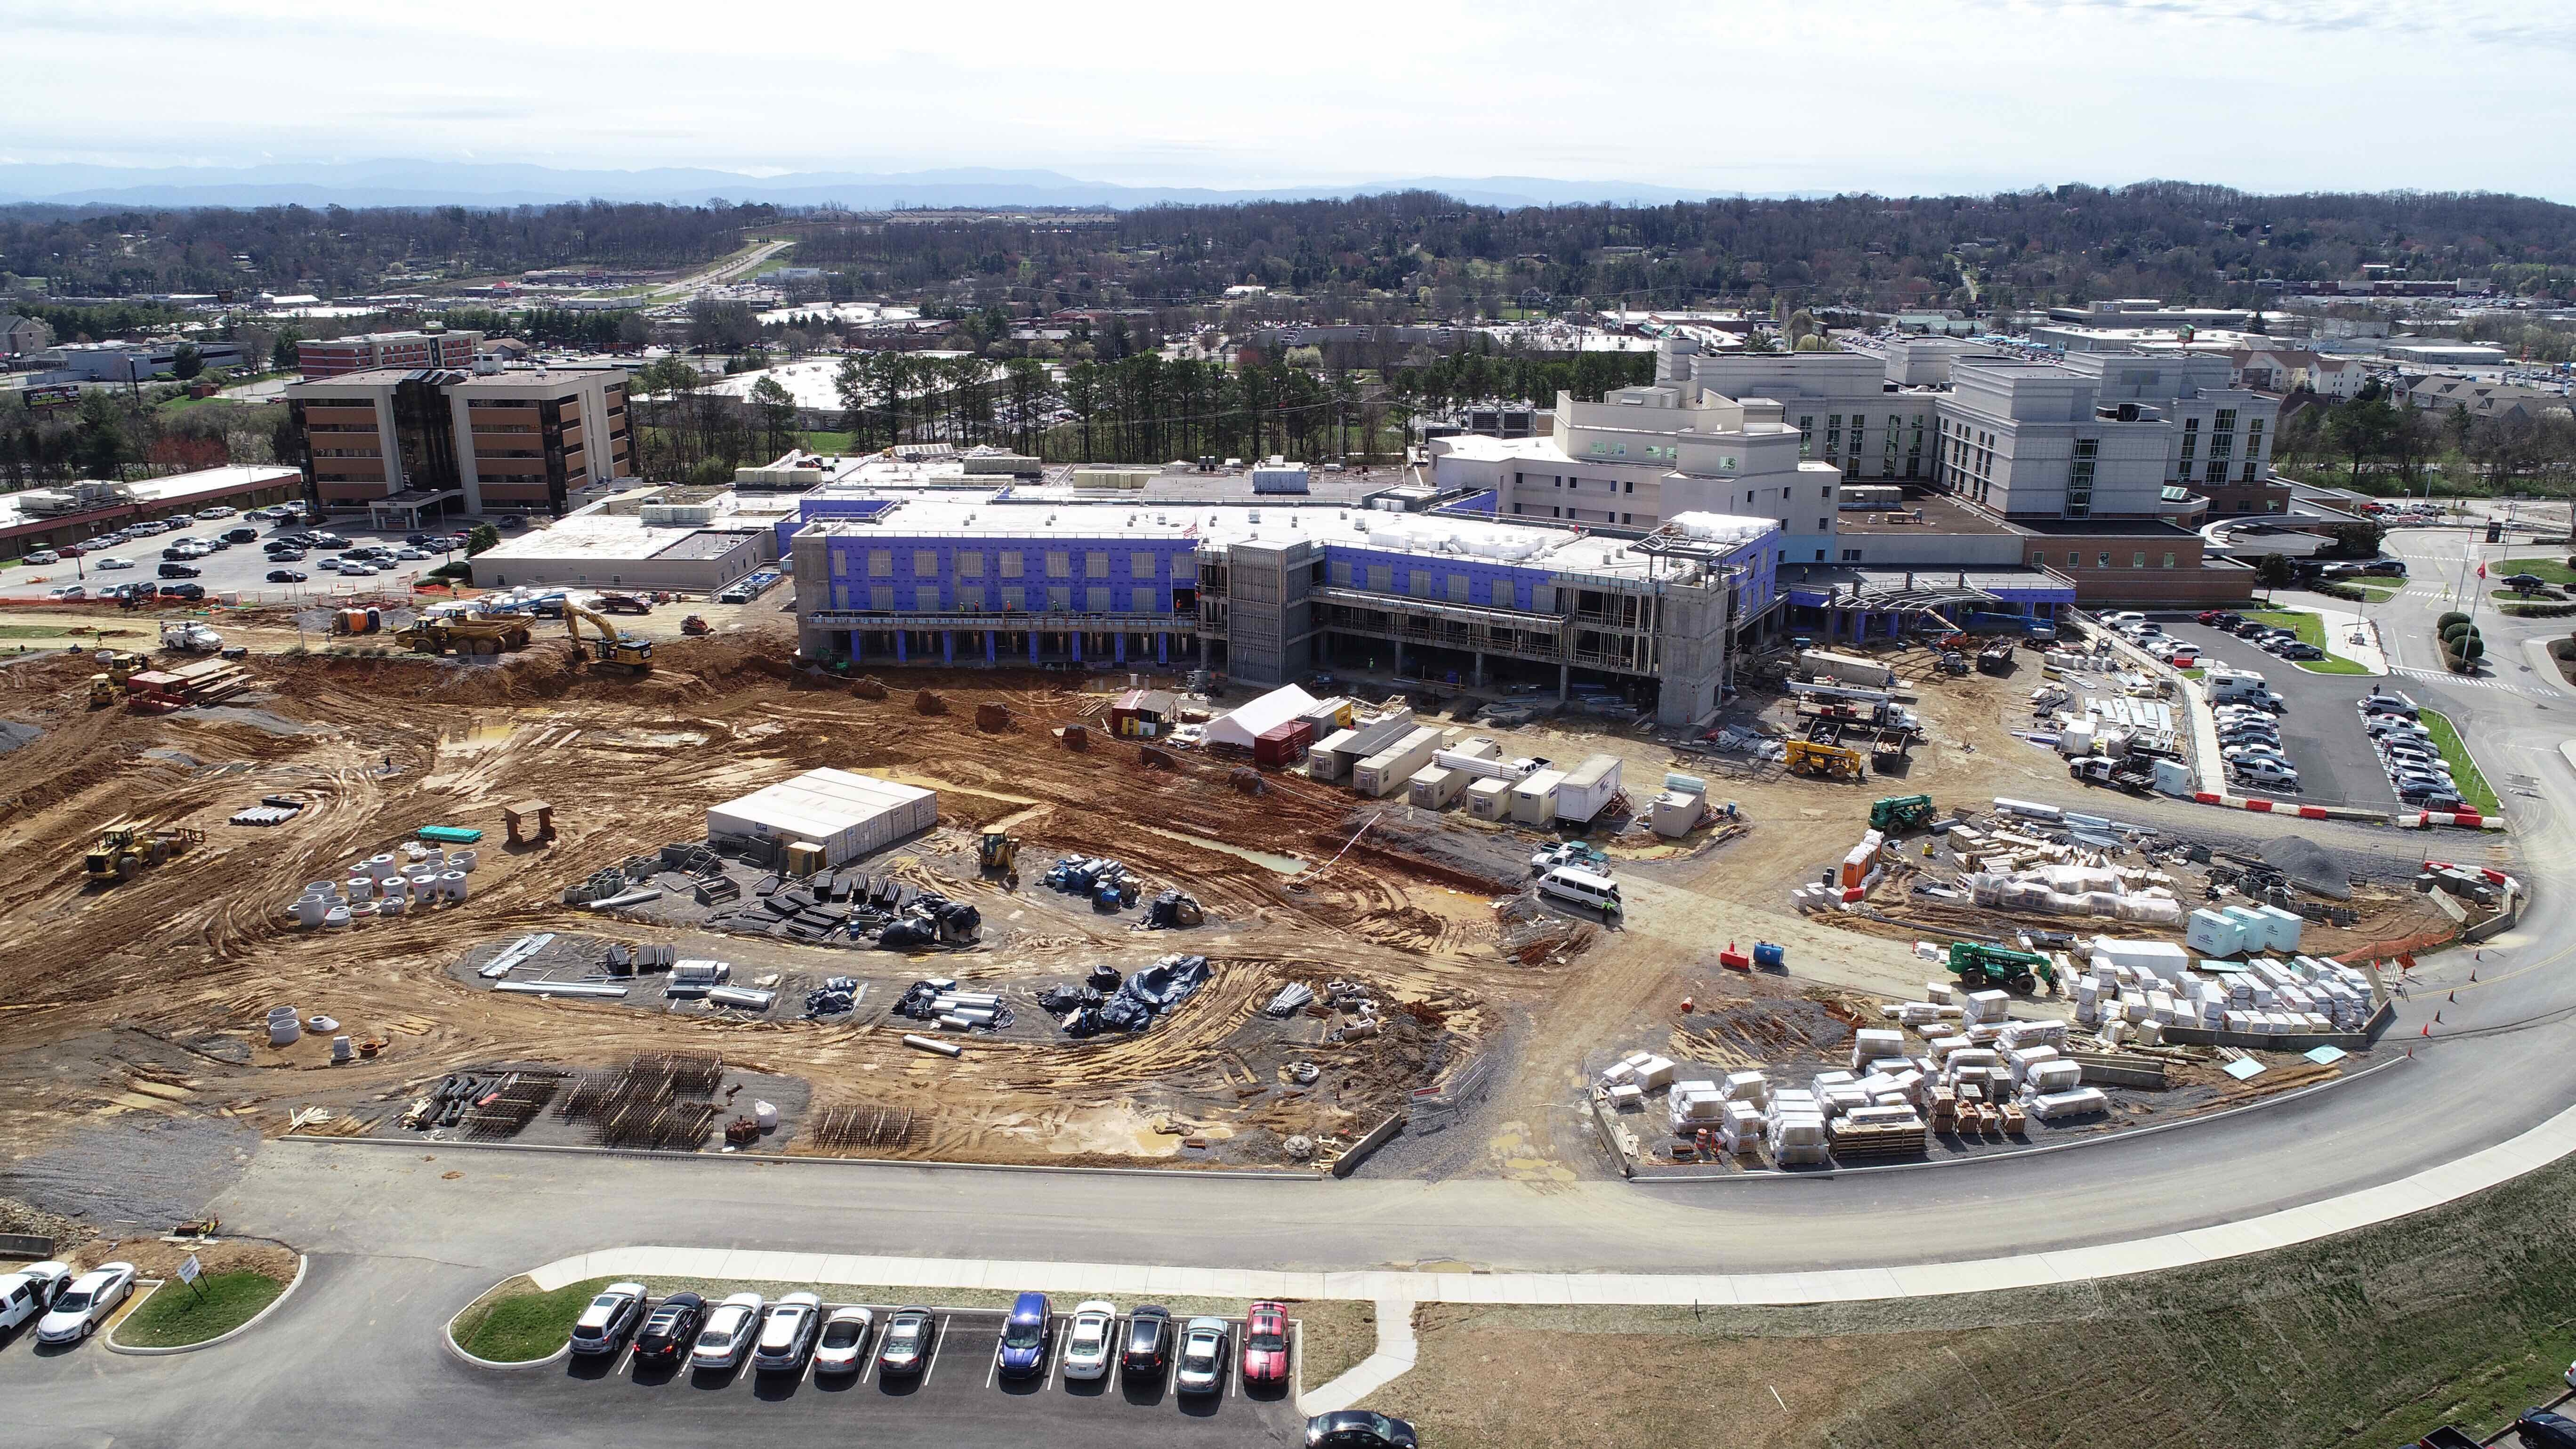 Drone shot showing new tower and parking areas.